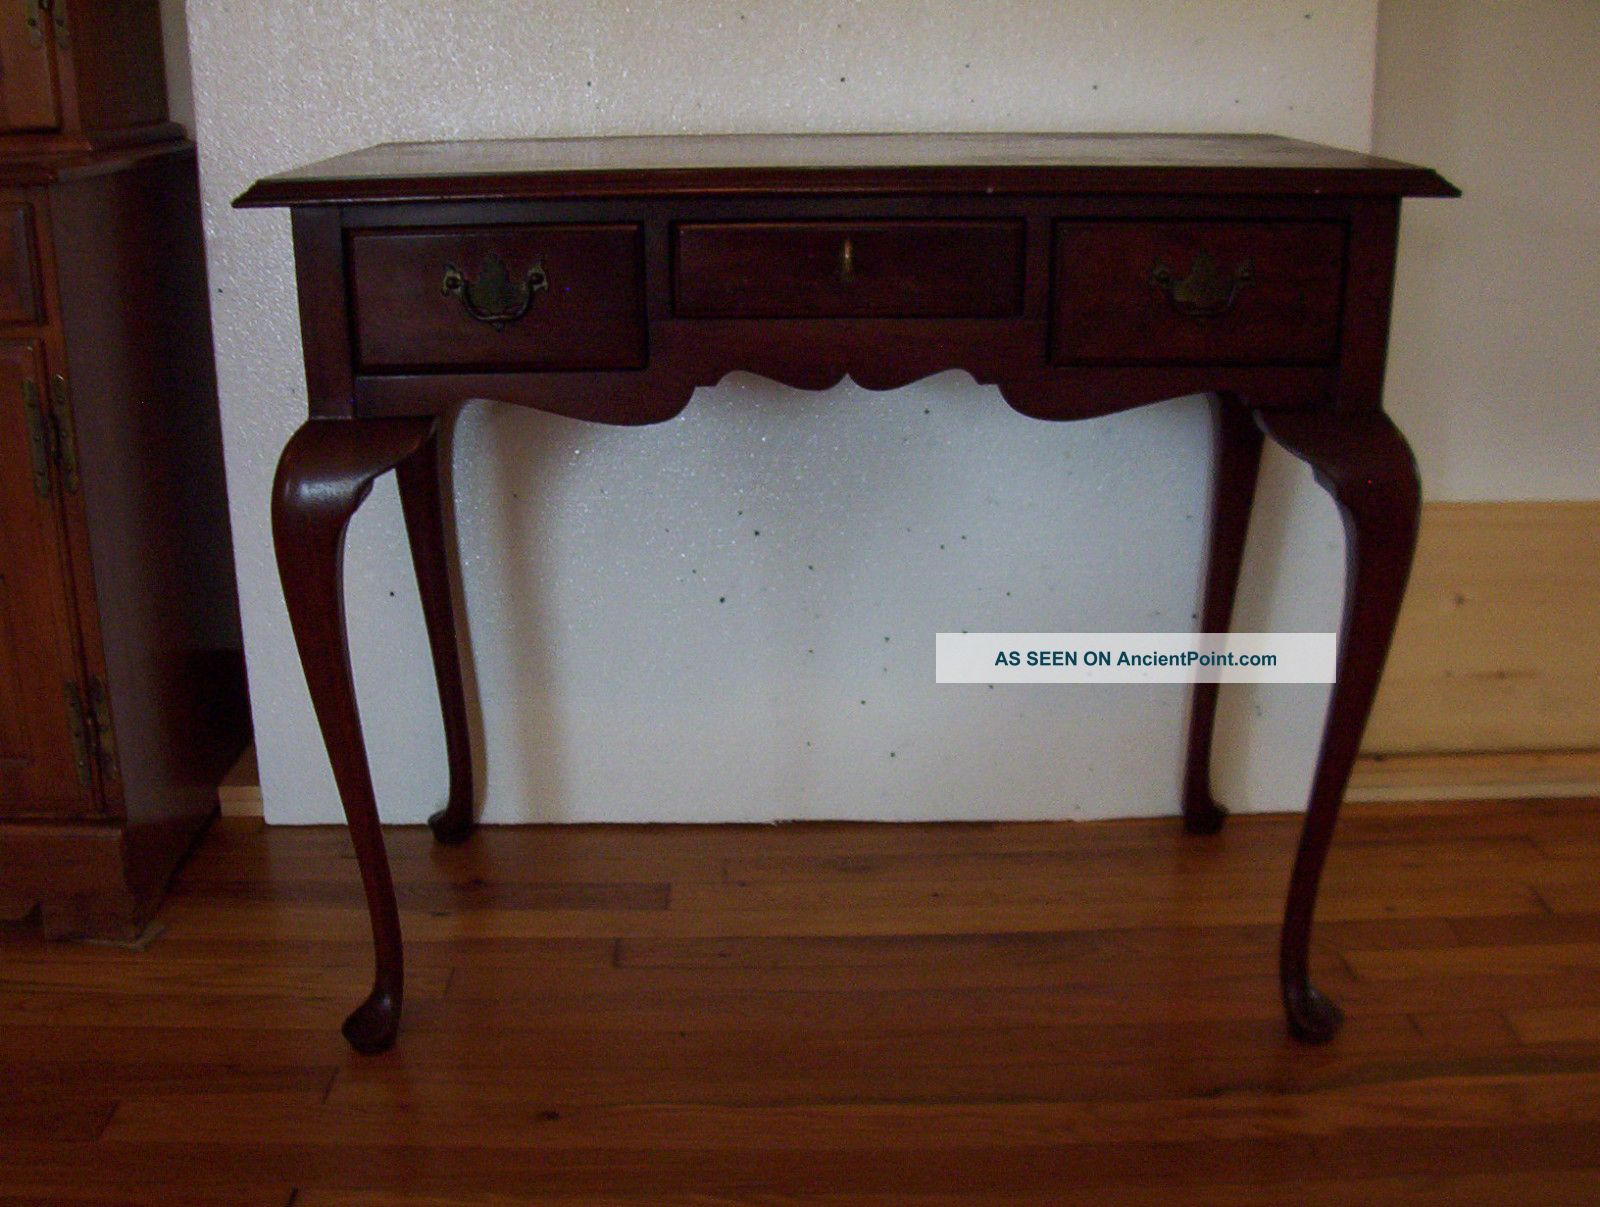 Mahogany Or Cherry Small Desk Or Writing Table Looks Like Thomasville Furniture Post-1950 photo